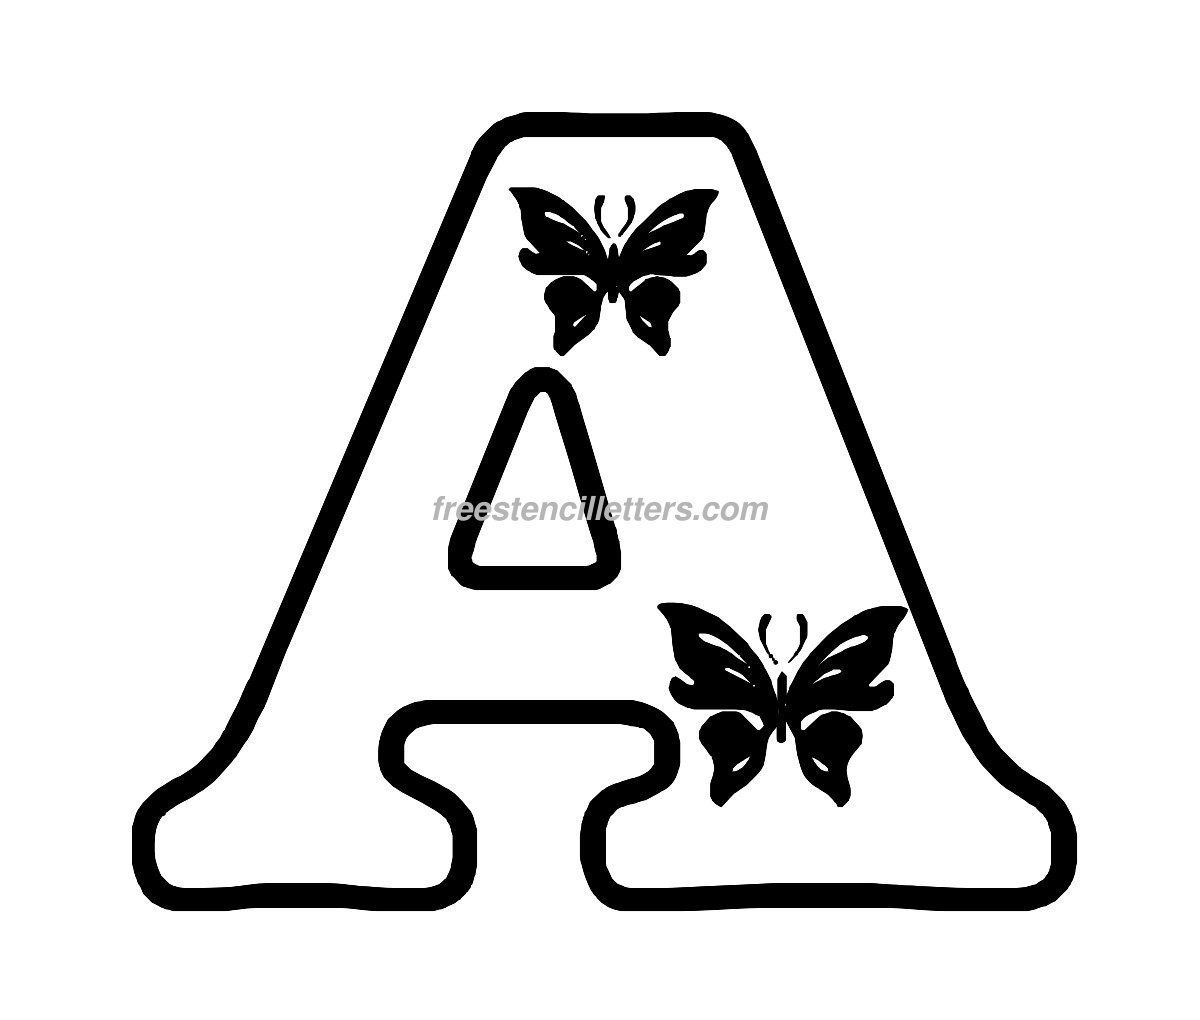 Free Butterfly Stencils To Print   Print A Letter Stencil   A - Free Printable Alphabet Stencils To Cut Out